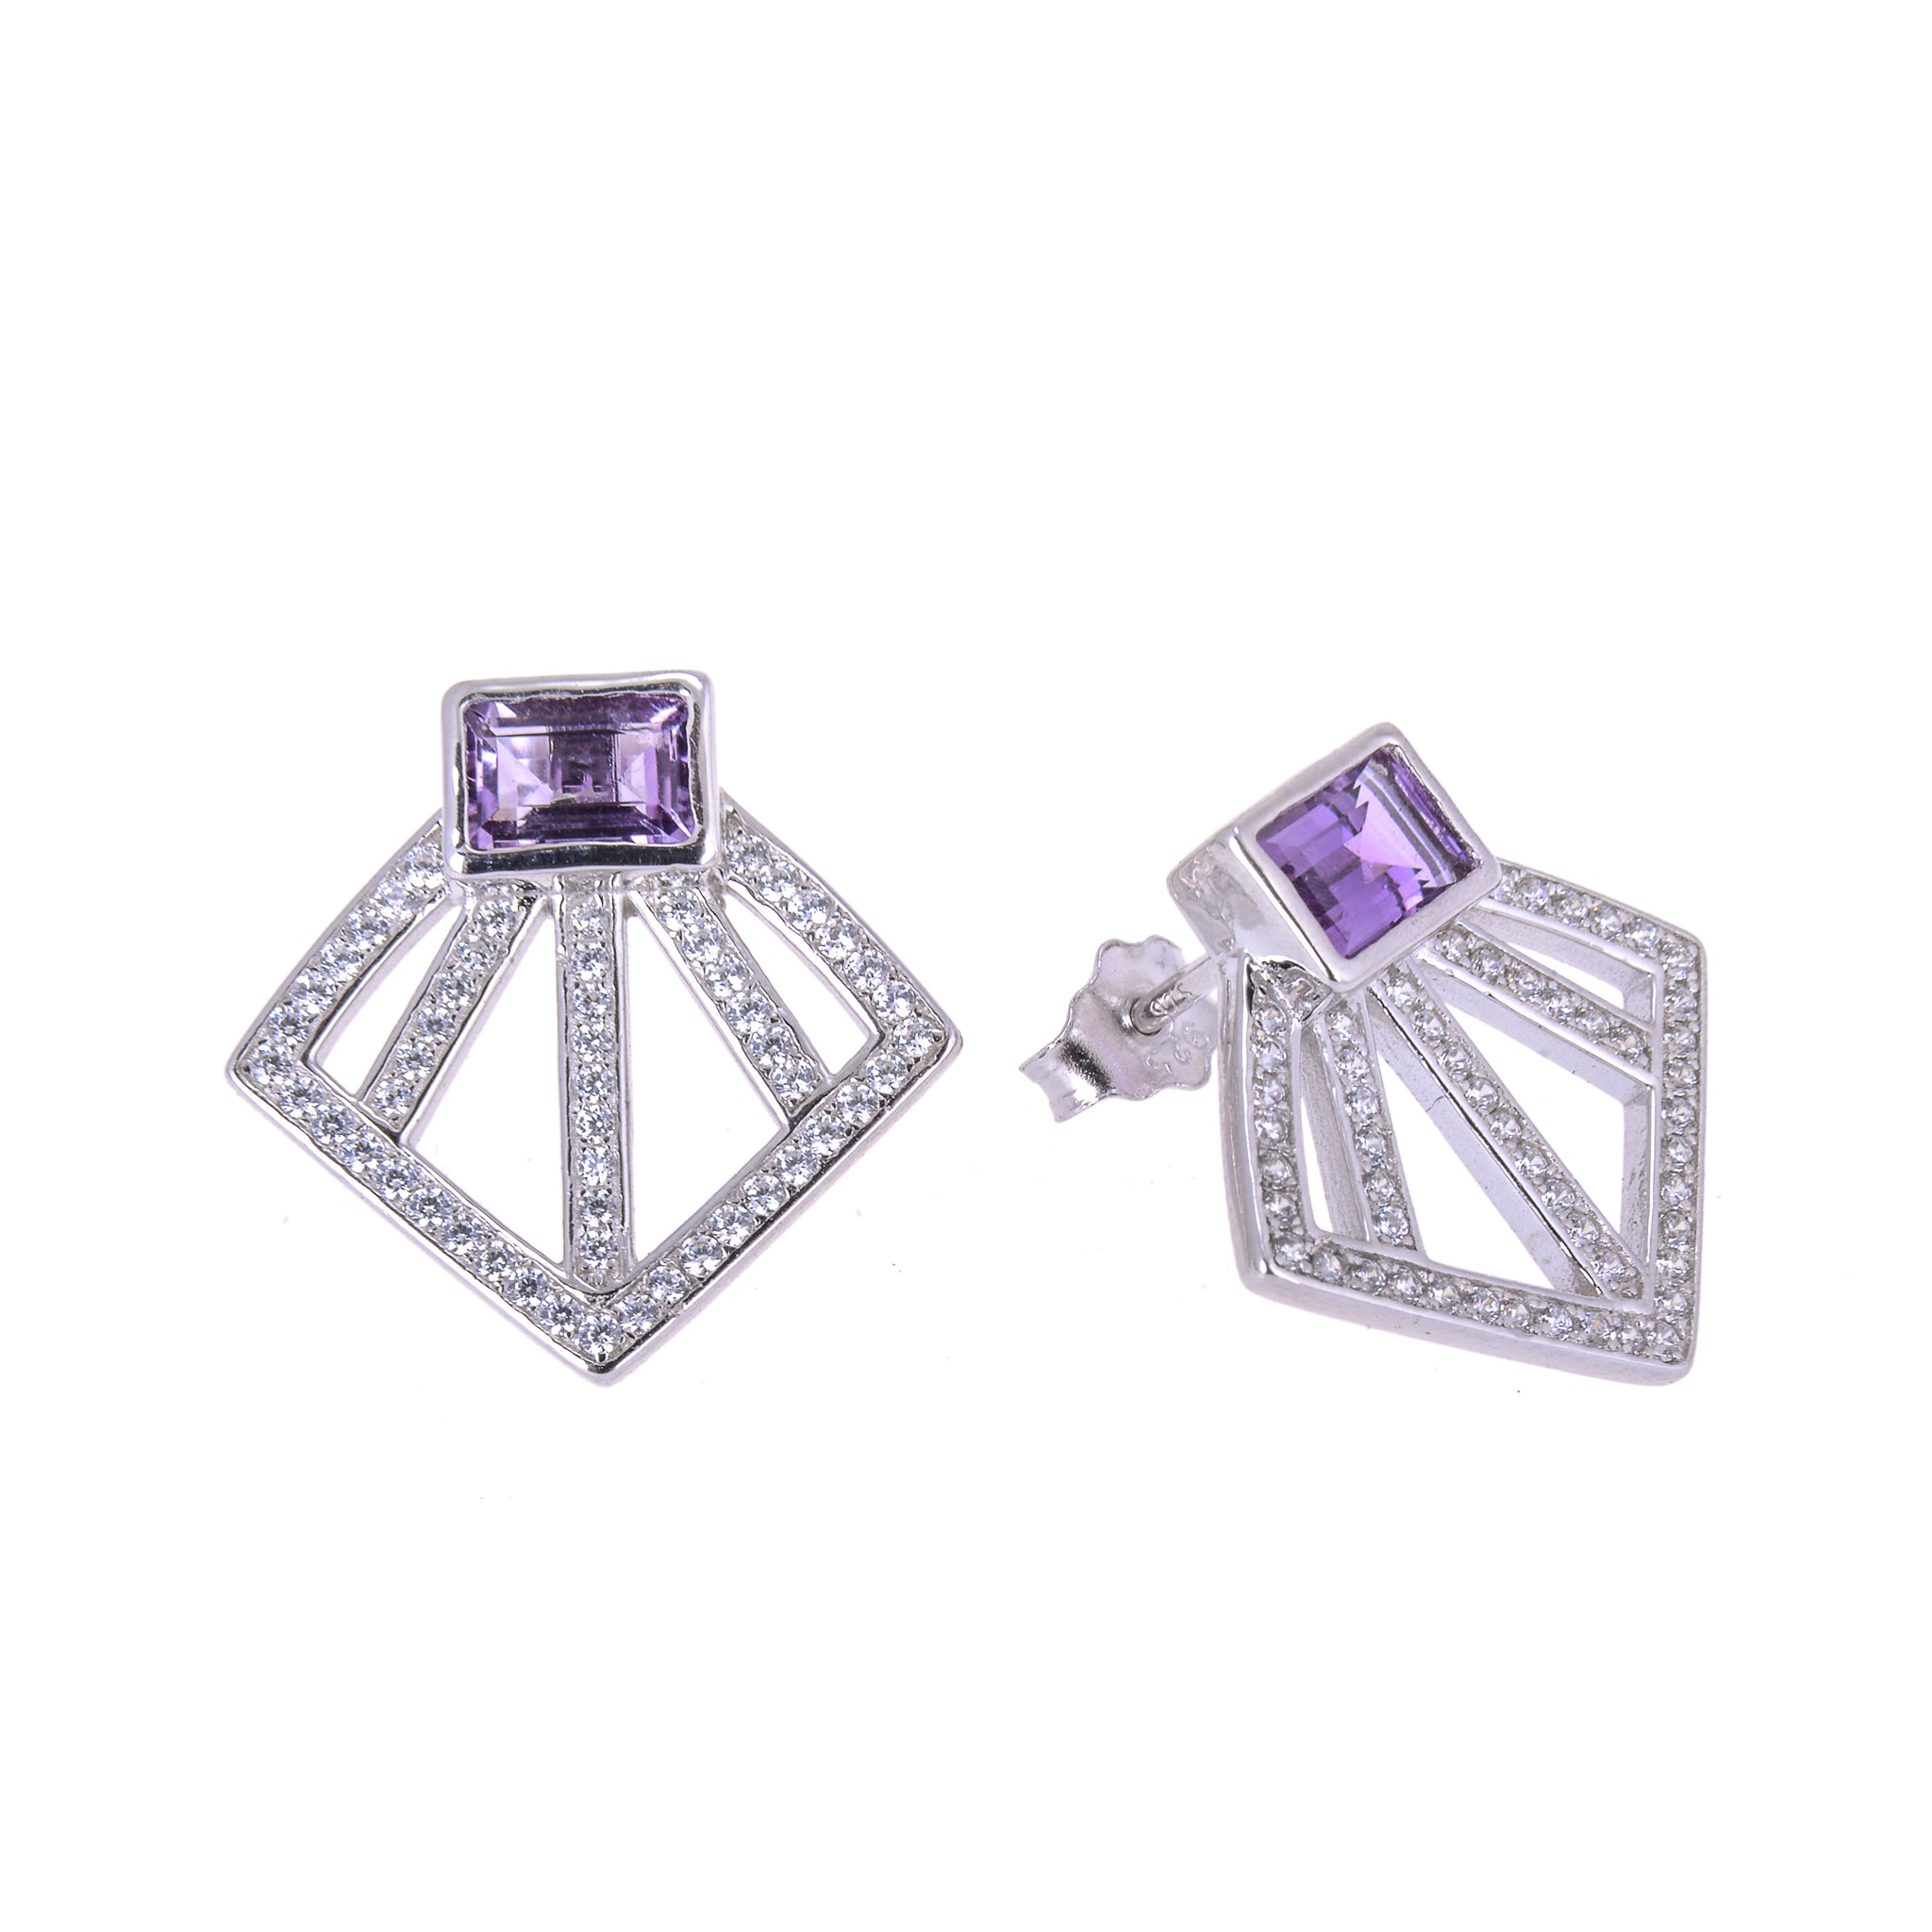 Sakura's Amethyst Fan Earrings